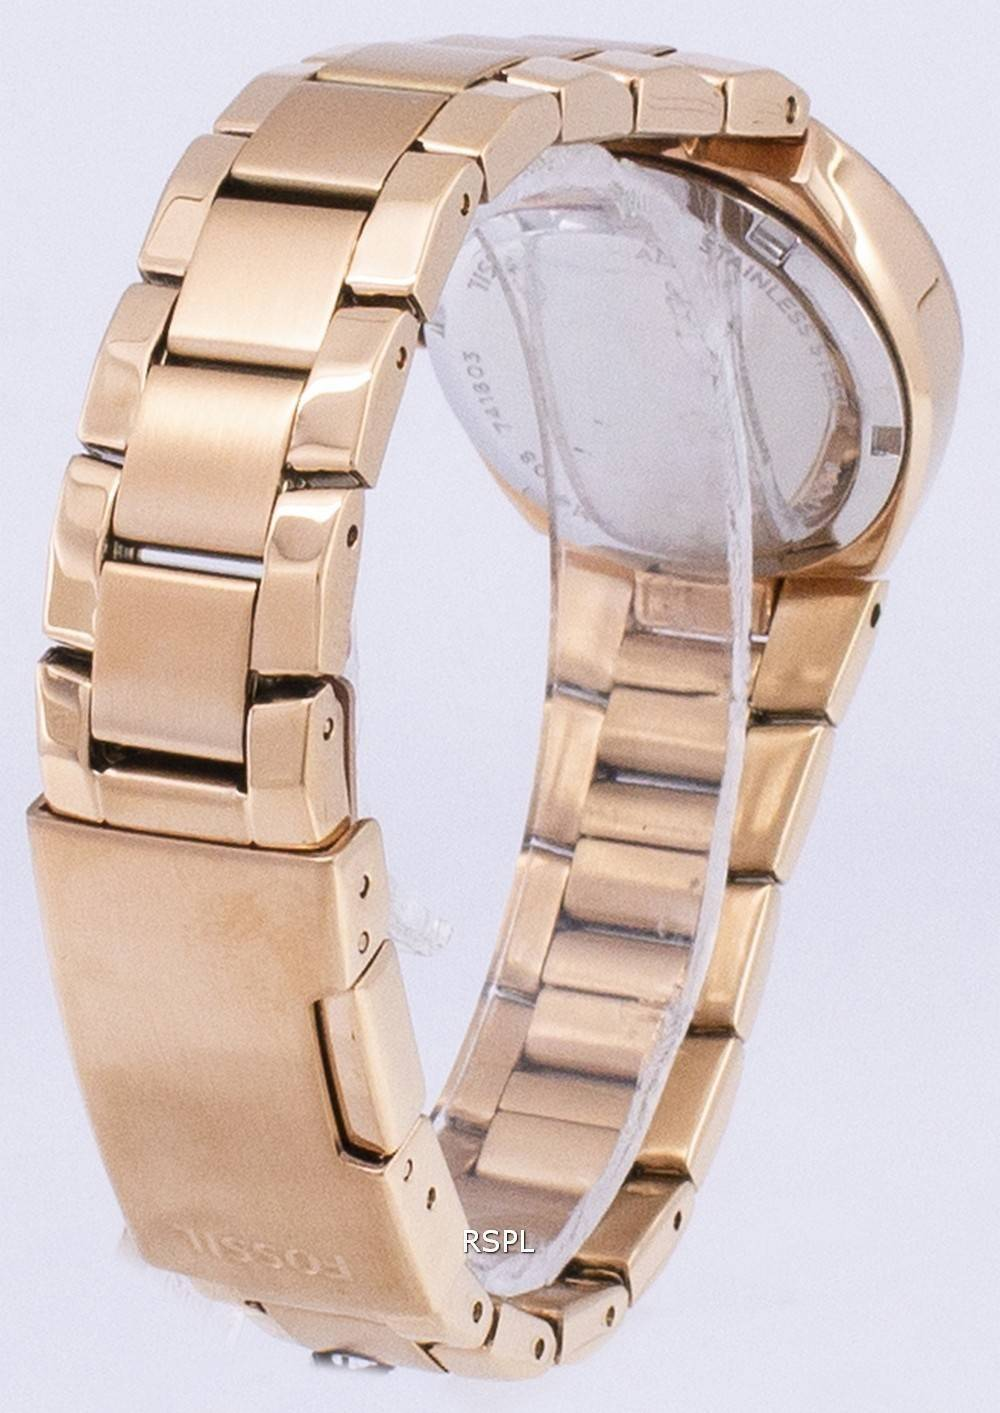 Fossil Cecile Multifunction Stainless Steel Watch Am 4509 Harga Fashion Am4559 Jam Tangan Wanita Gold Serena